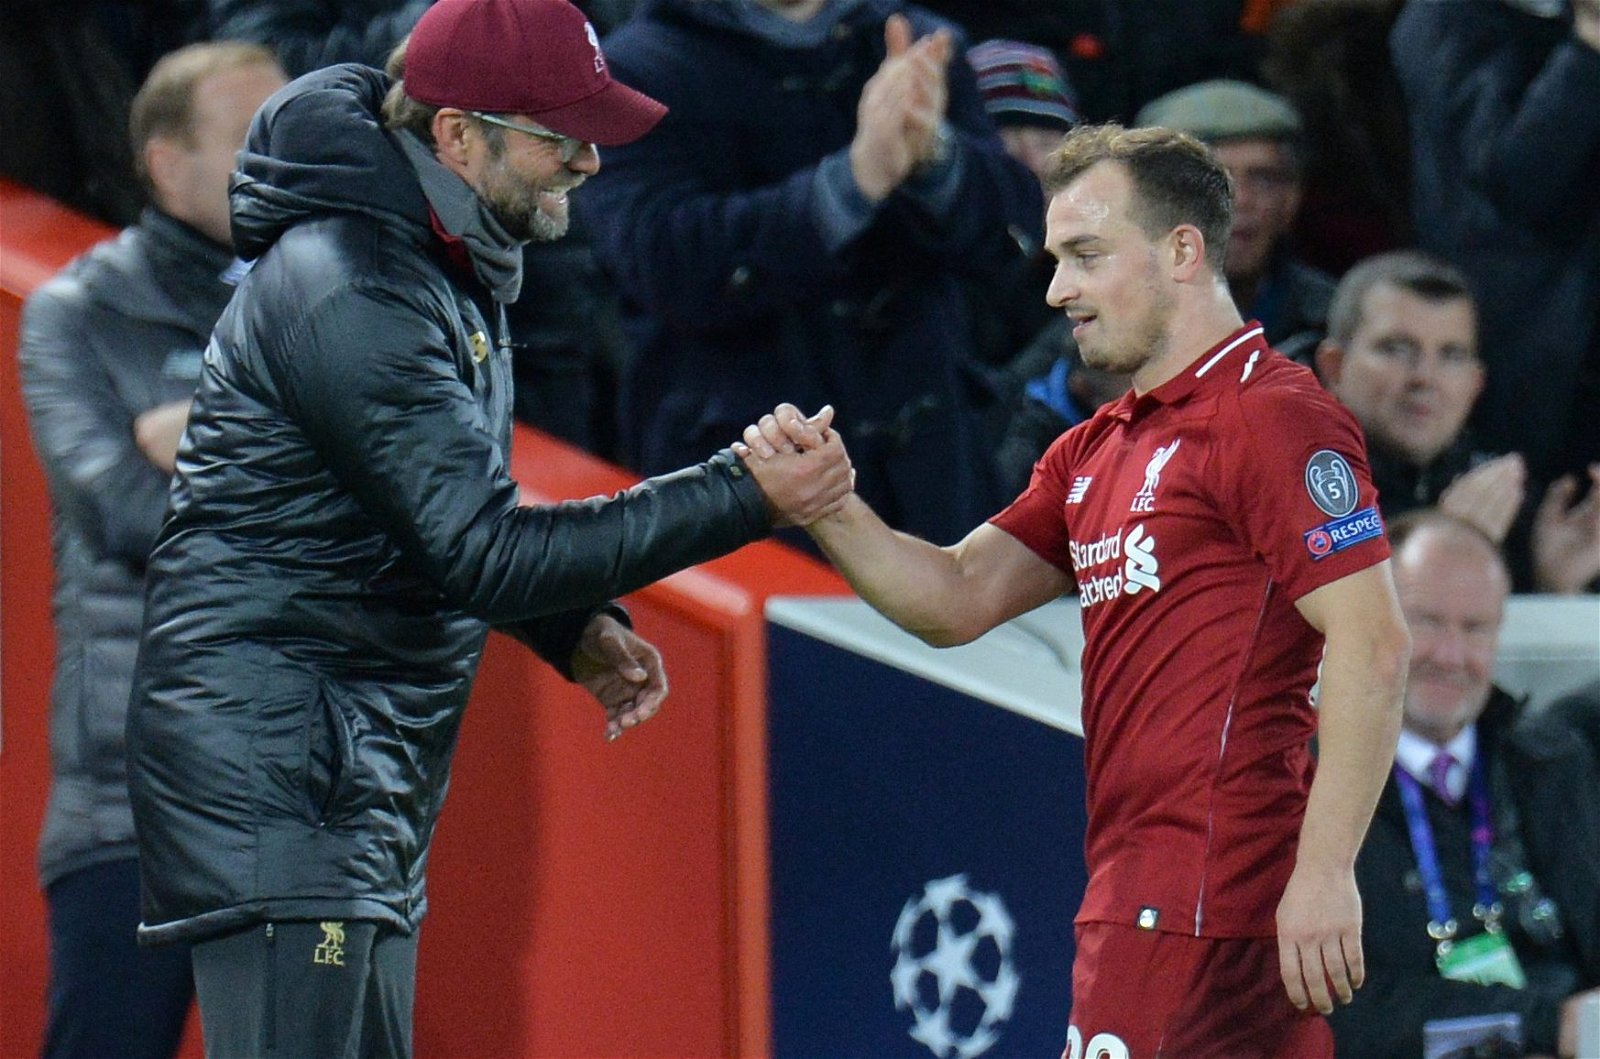 Xherdan Shaqiri shakes hands with Jurgen Klopp after being substituted during Liverpool v Red Star Belgrade